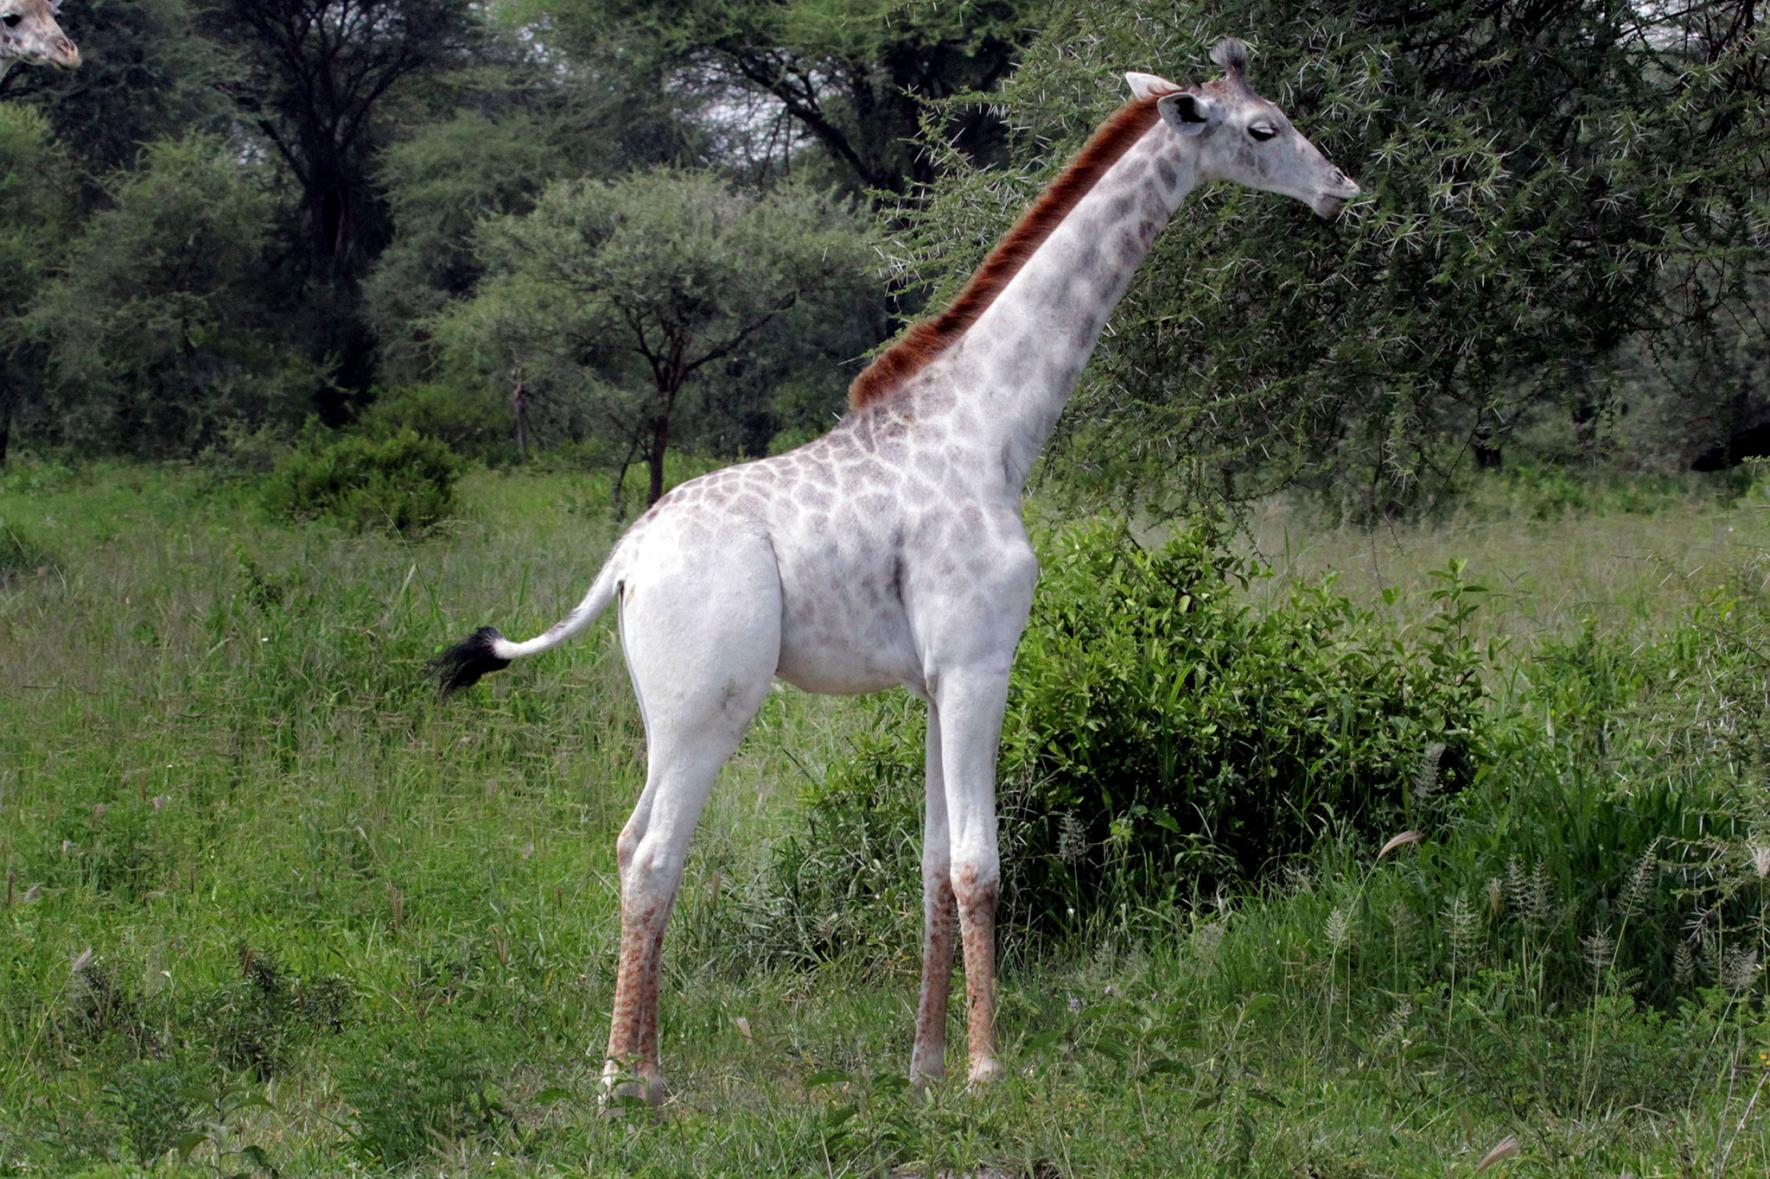 This is Omo, a white-colored giraffe.